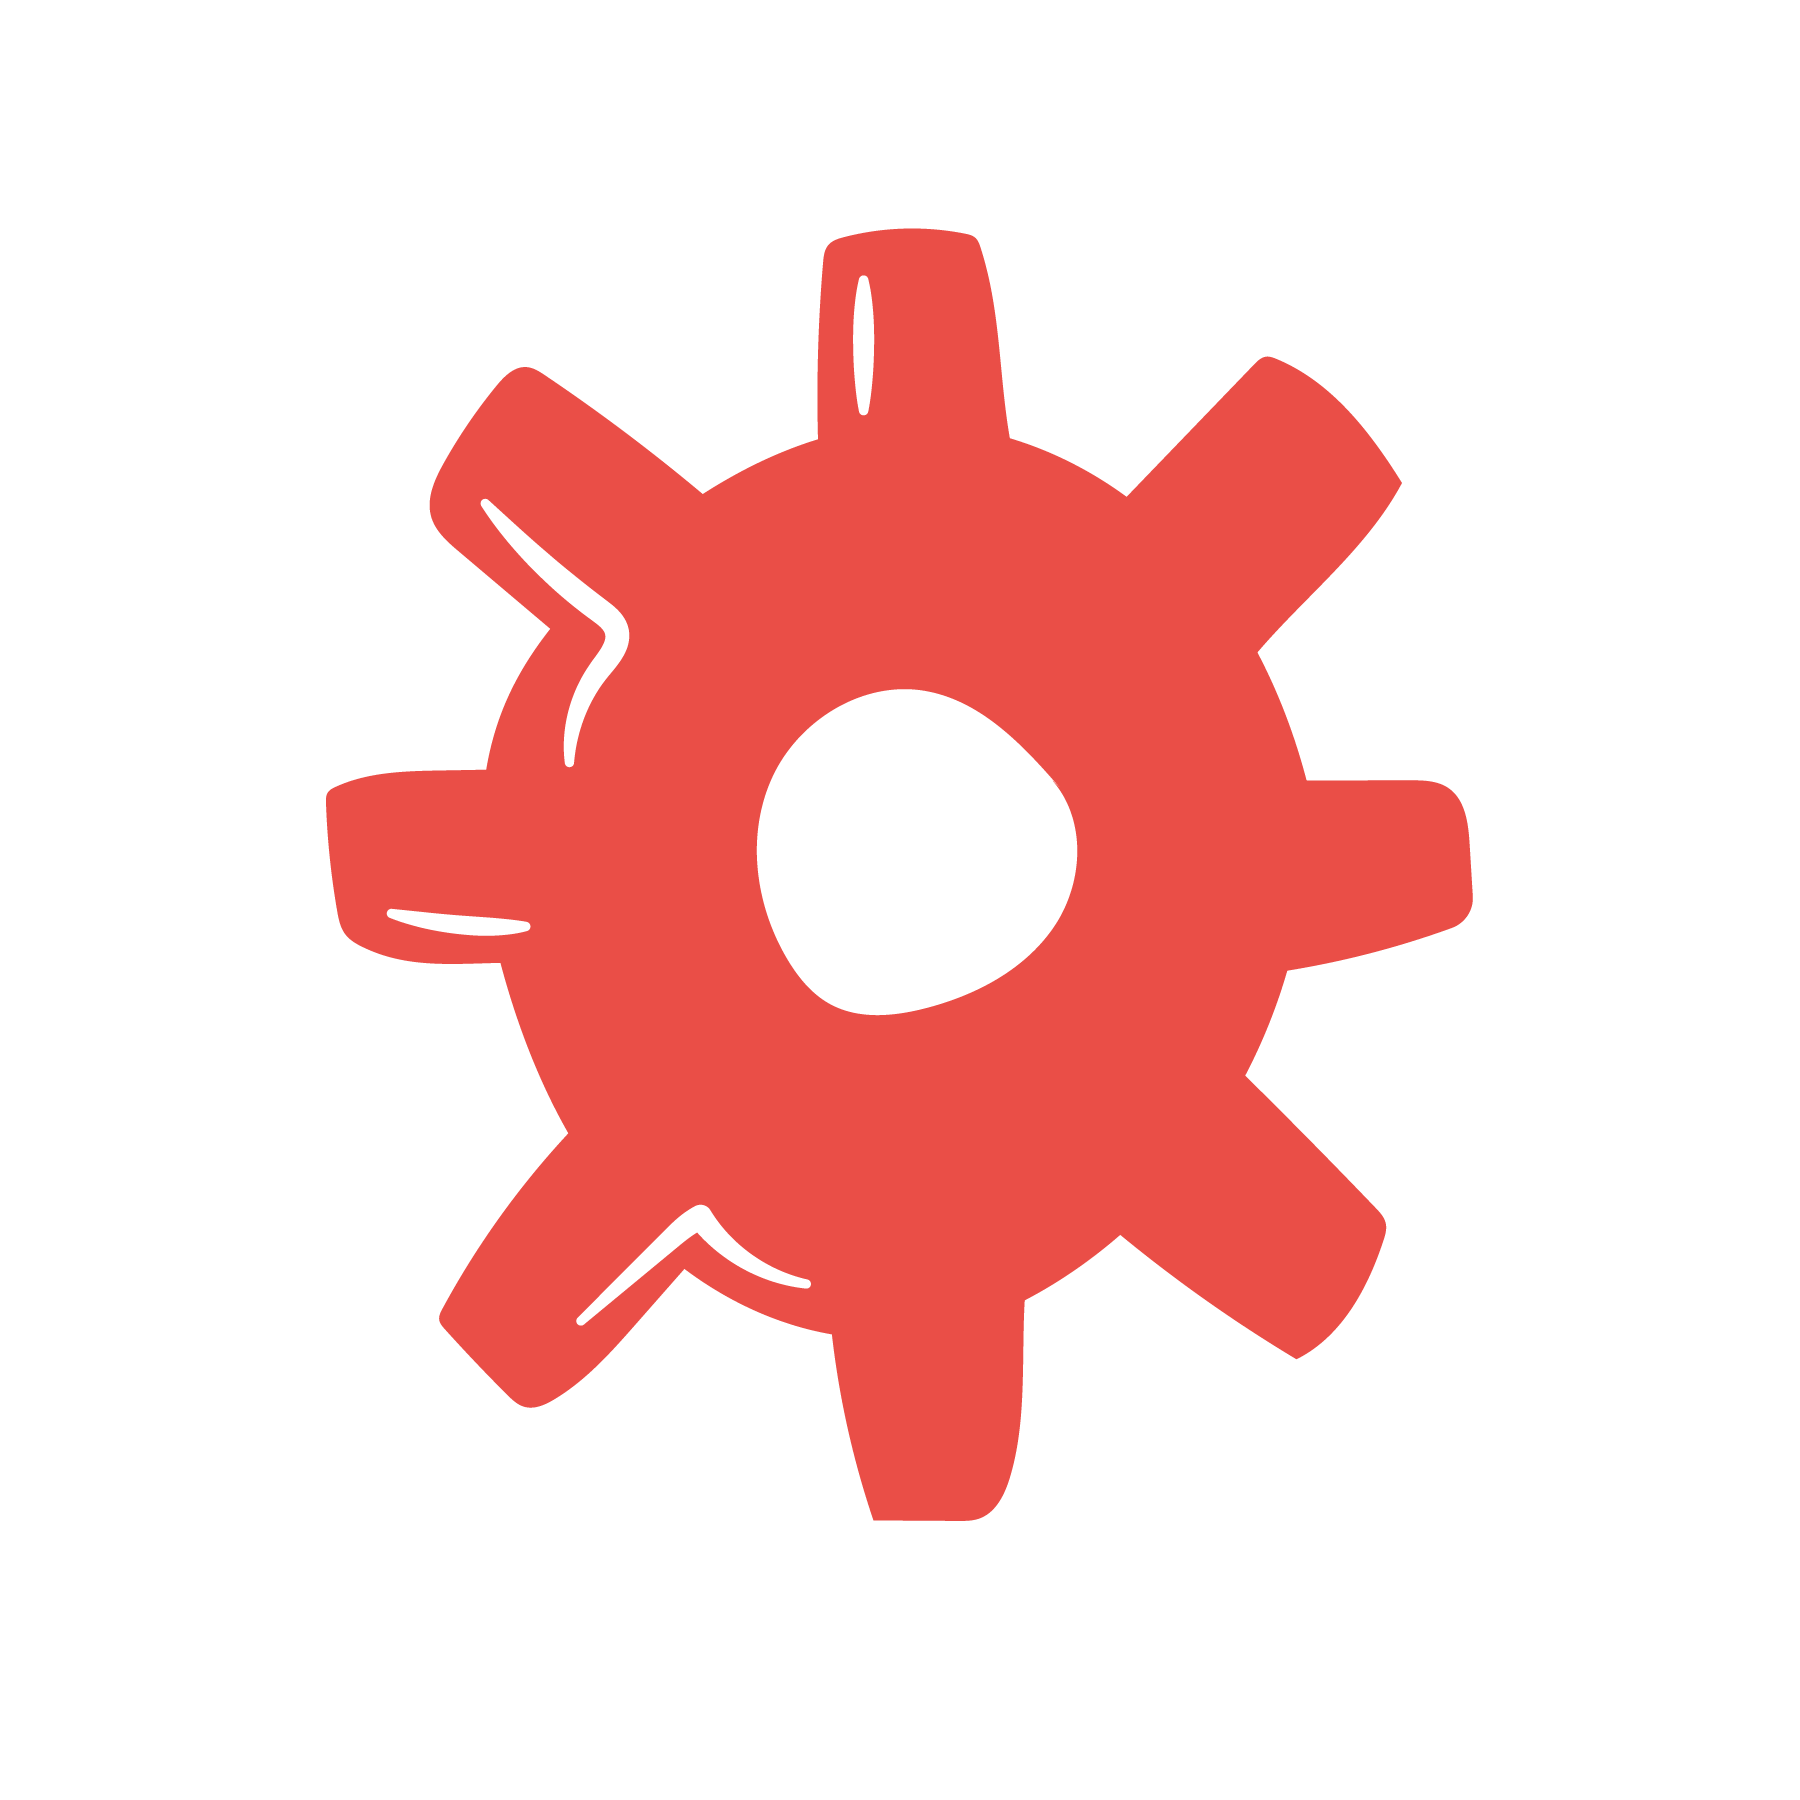 operations_icon.png